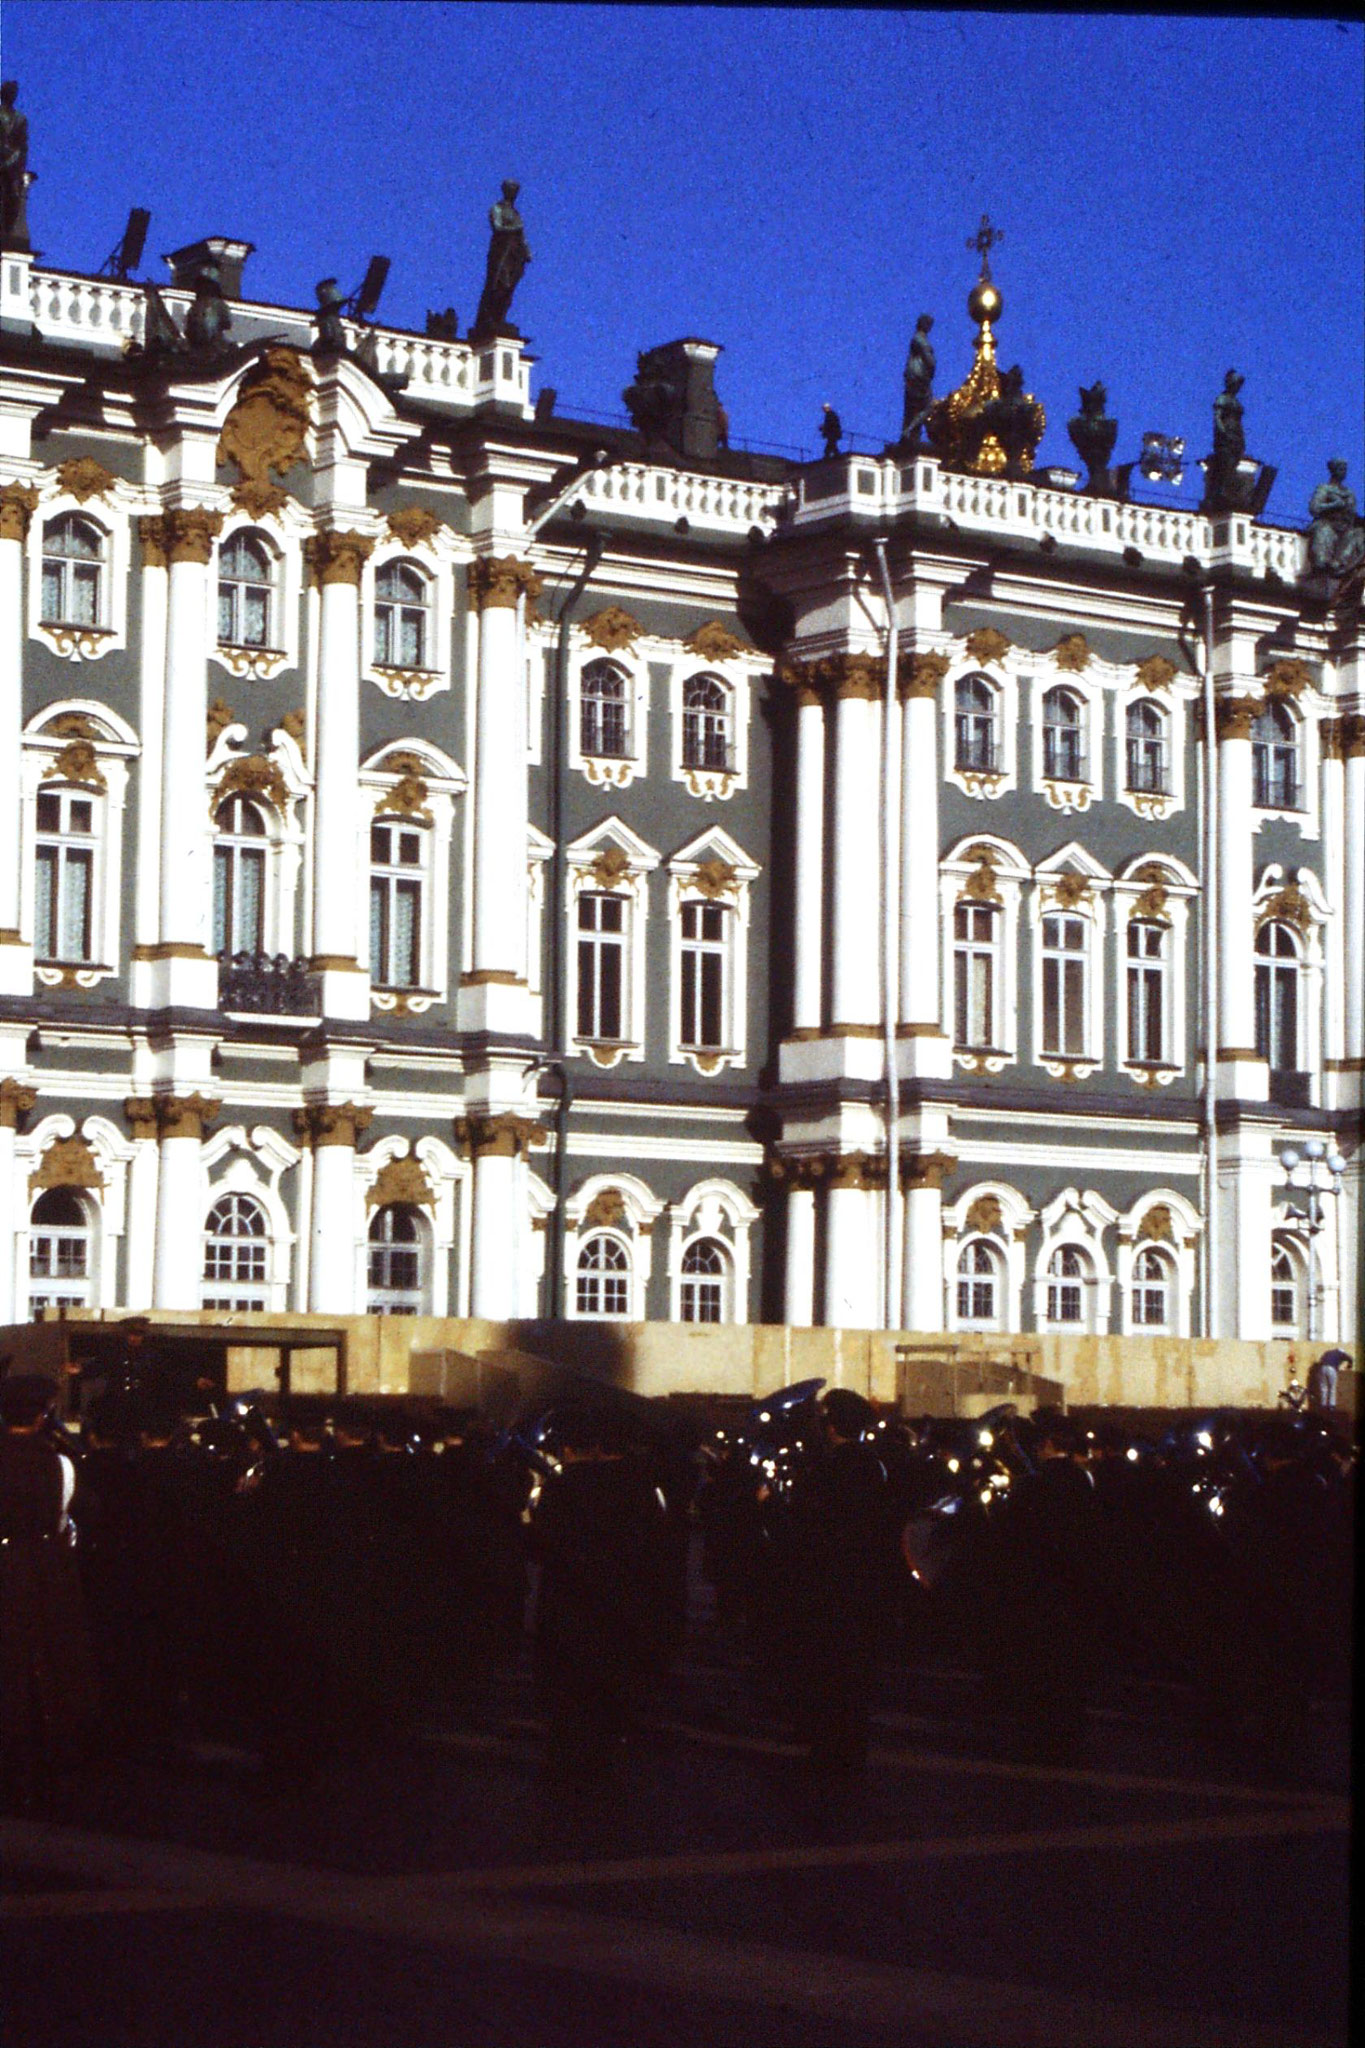 13/10/1988: 16:  Leningrad band in front of Hermitage